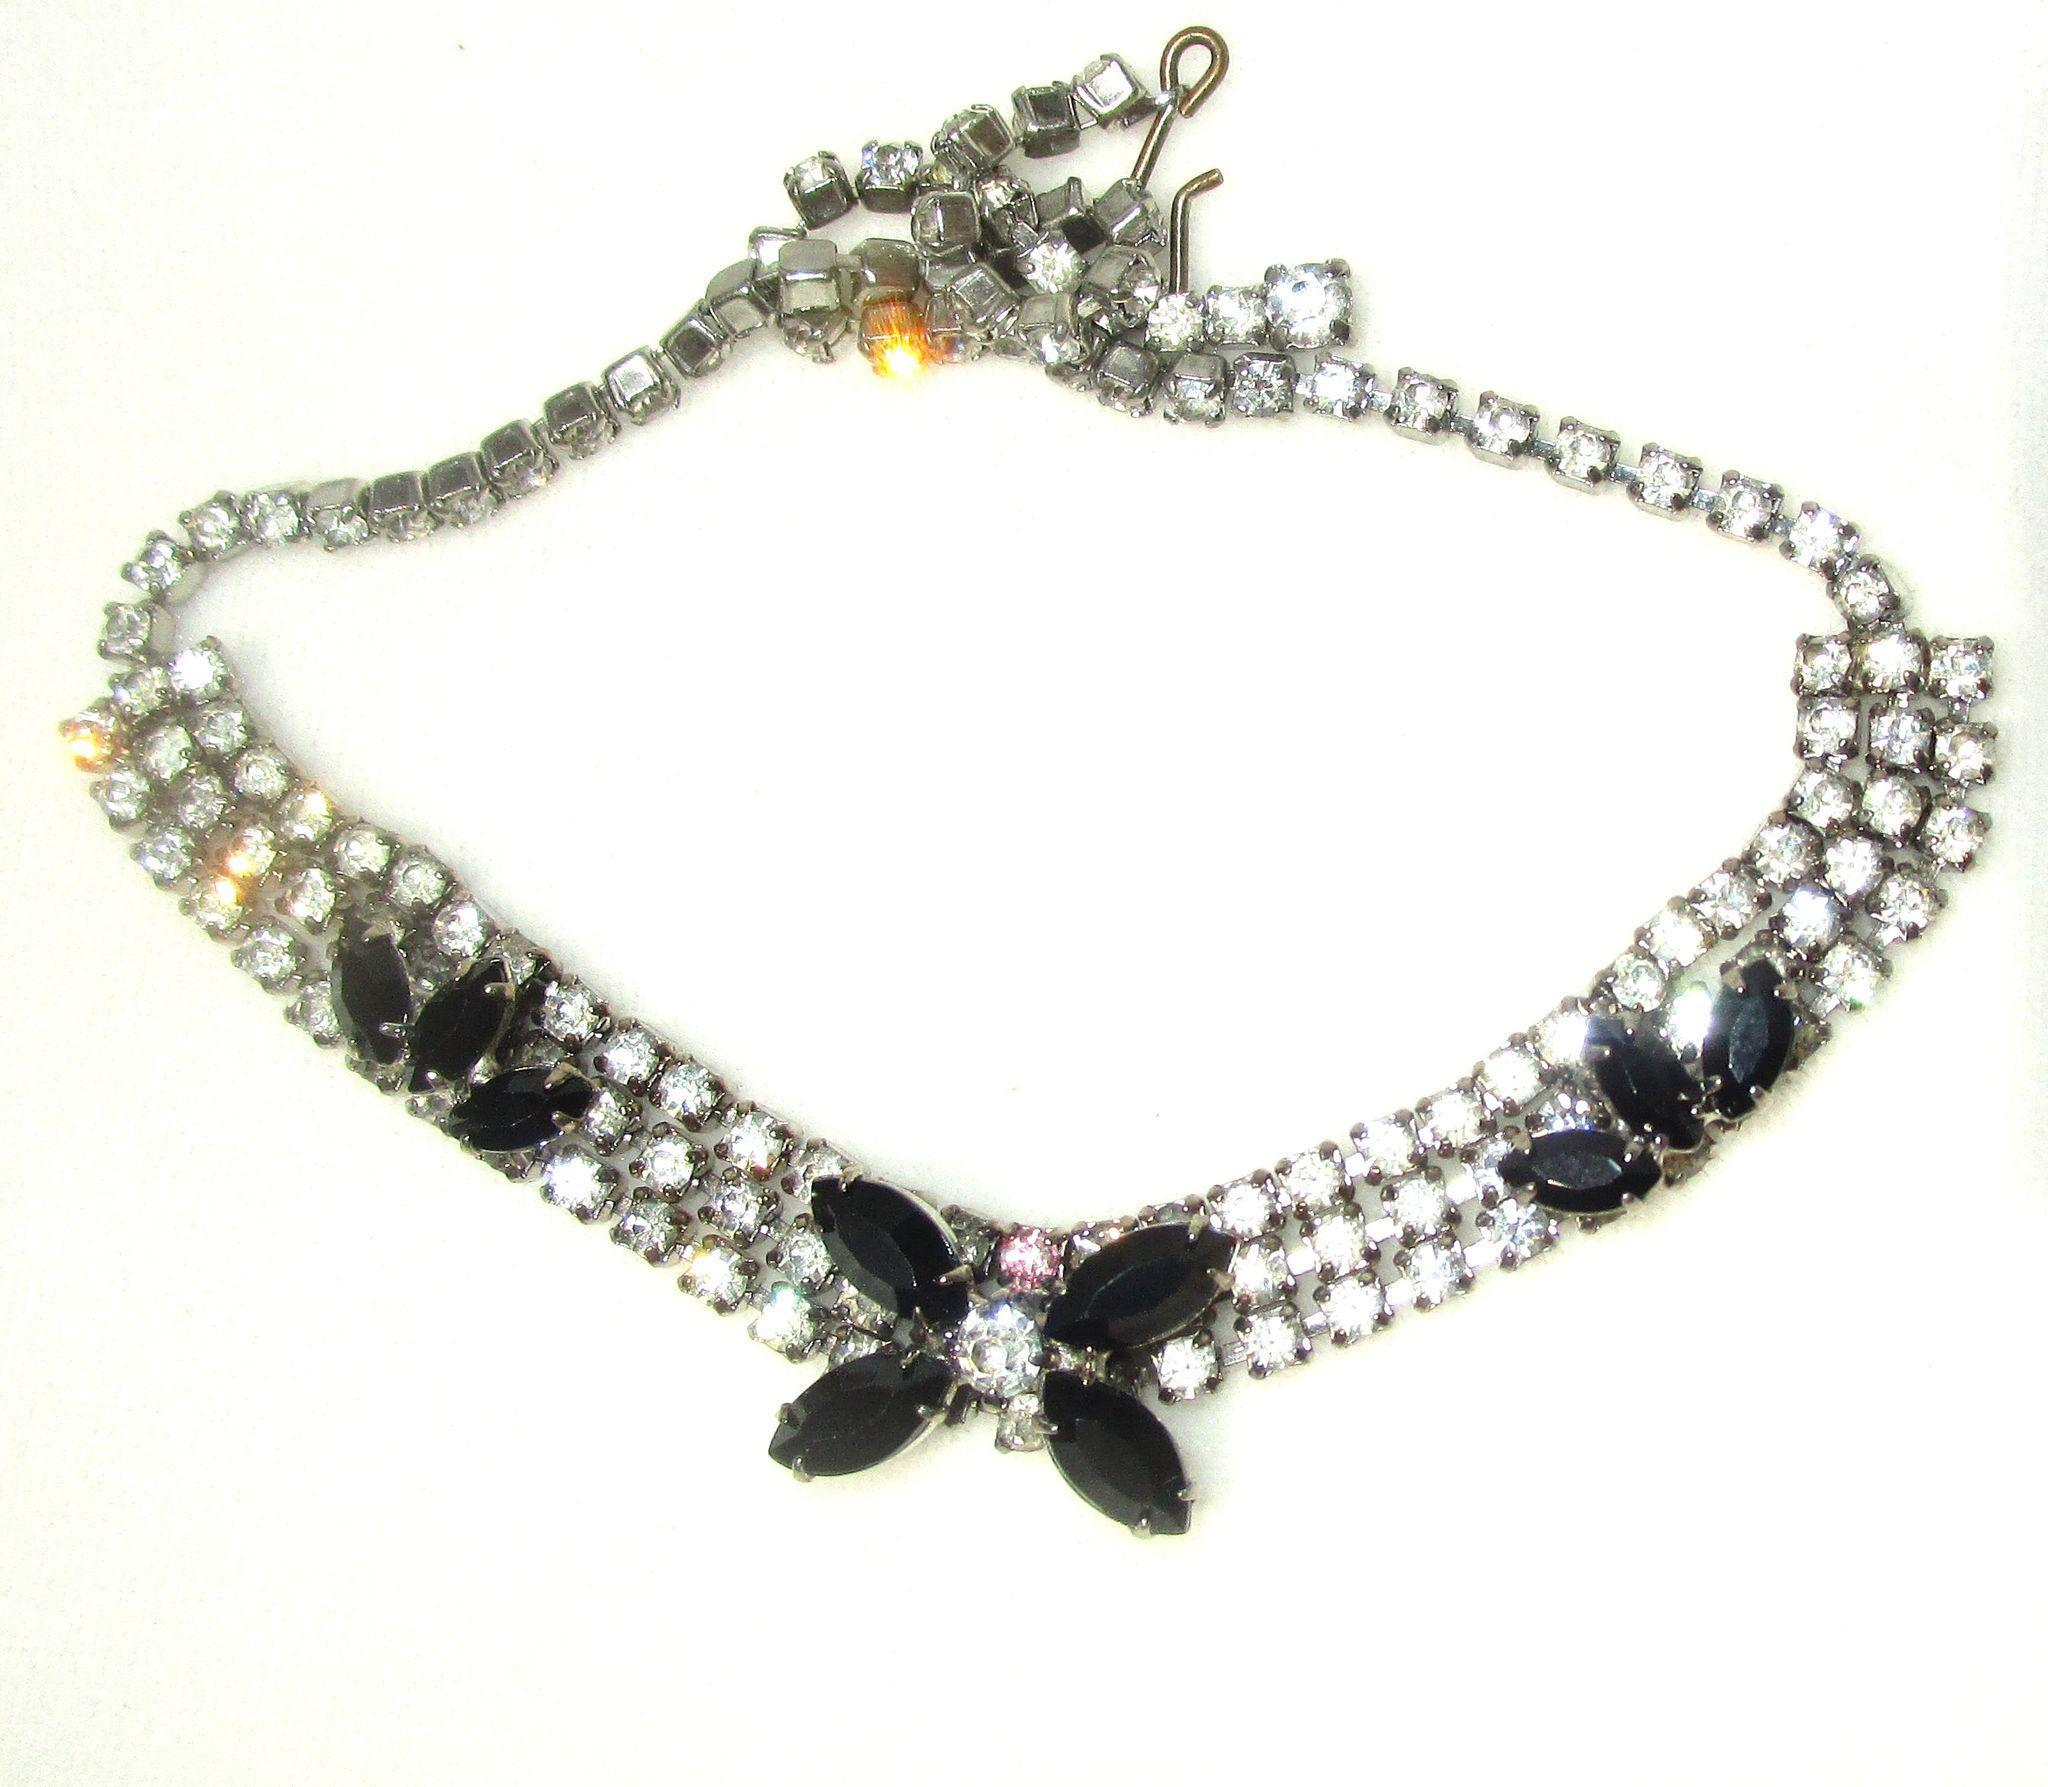 Vintage Black and White Rhinestone Necklace/Matching Earrings